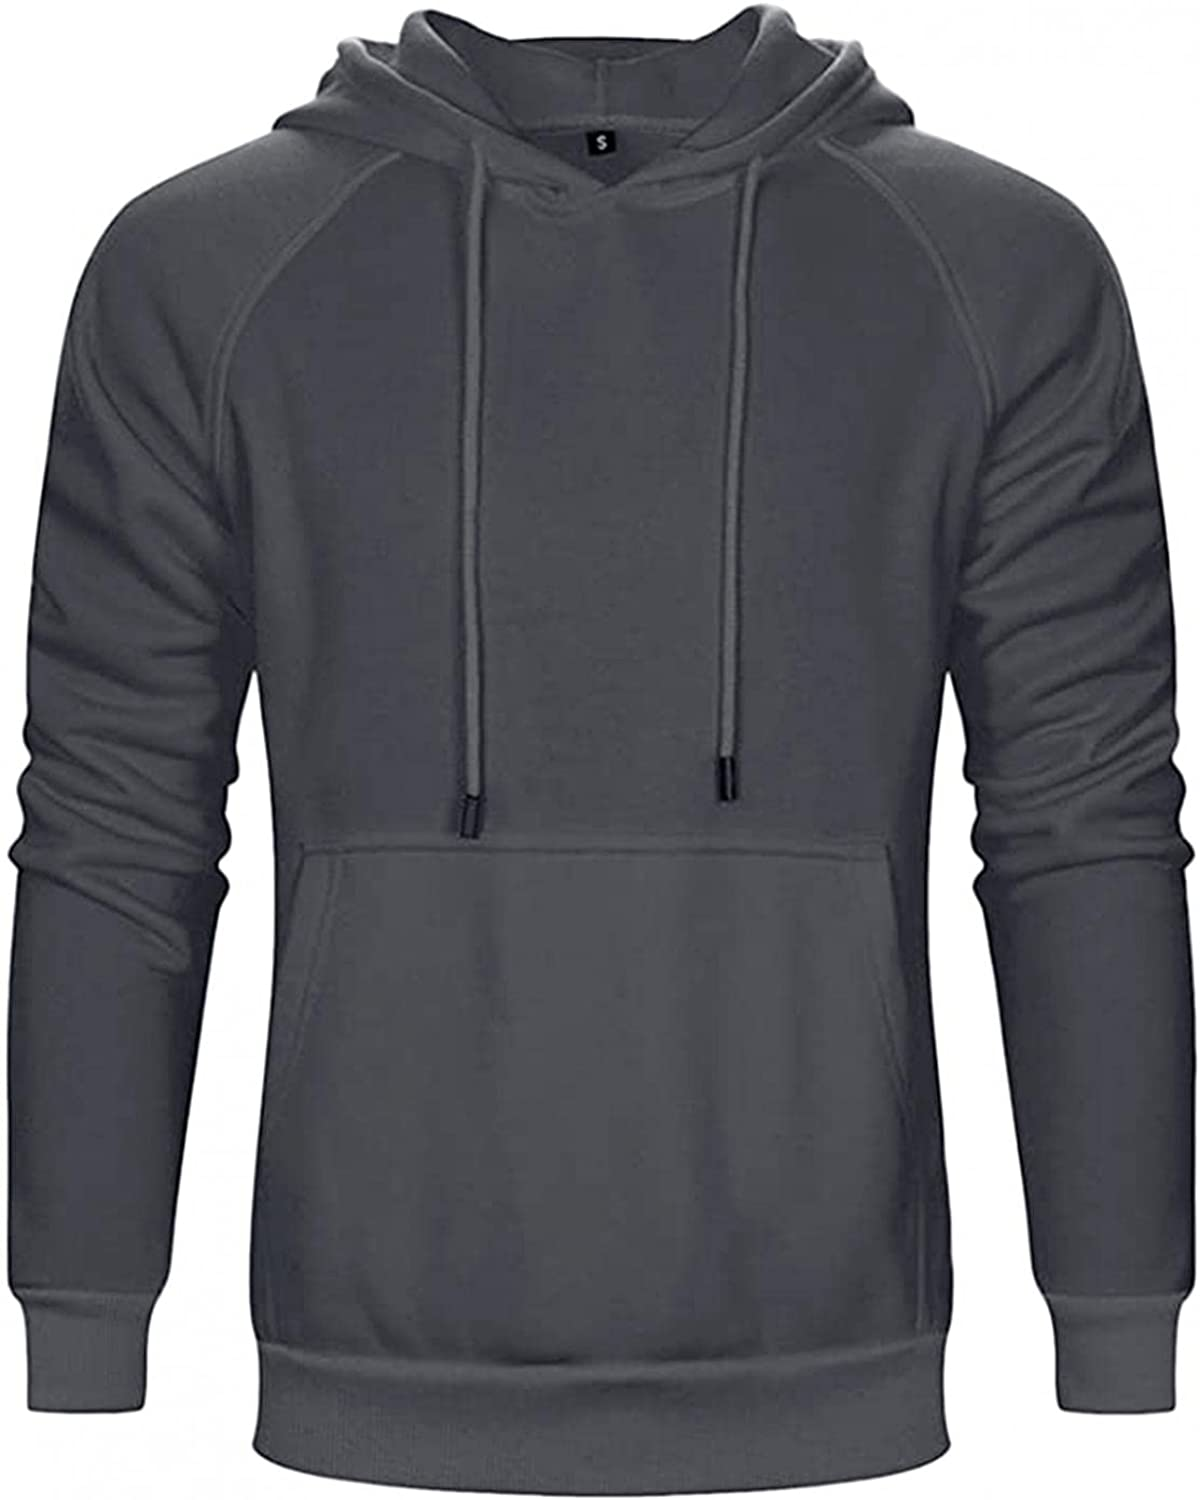 Mens Hooded Sweatershirts Long Sleeve Drawstring Pullover Tops Classic-Fit Plaid Jacquard Hoodies Casual Slim Blouse